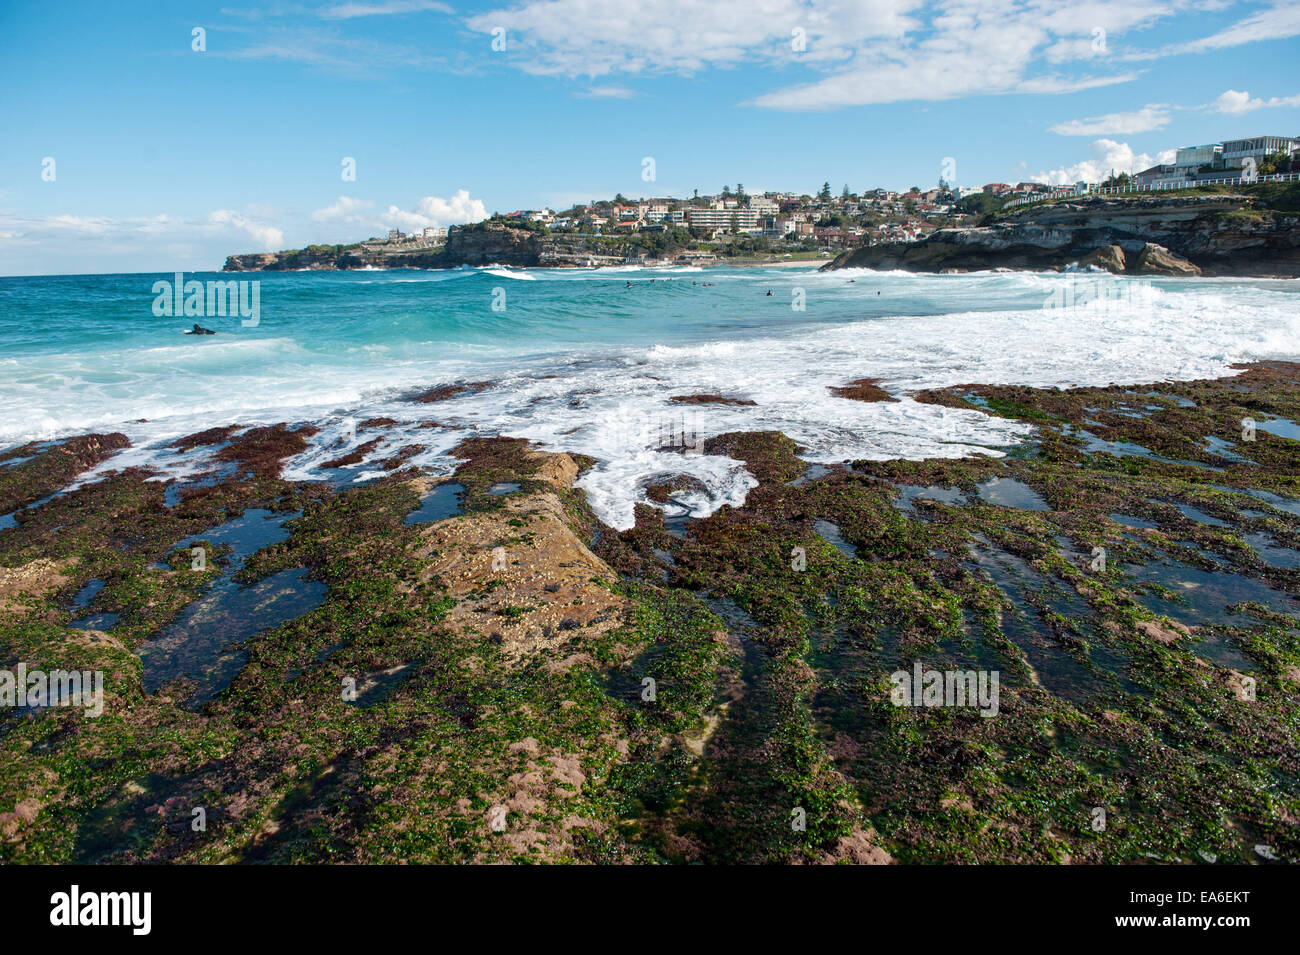 Australia, New South Wales, Sydney, Tamarama beach - Stock Image